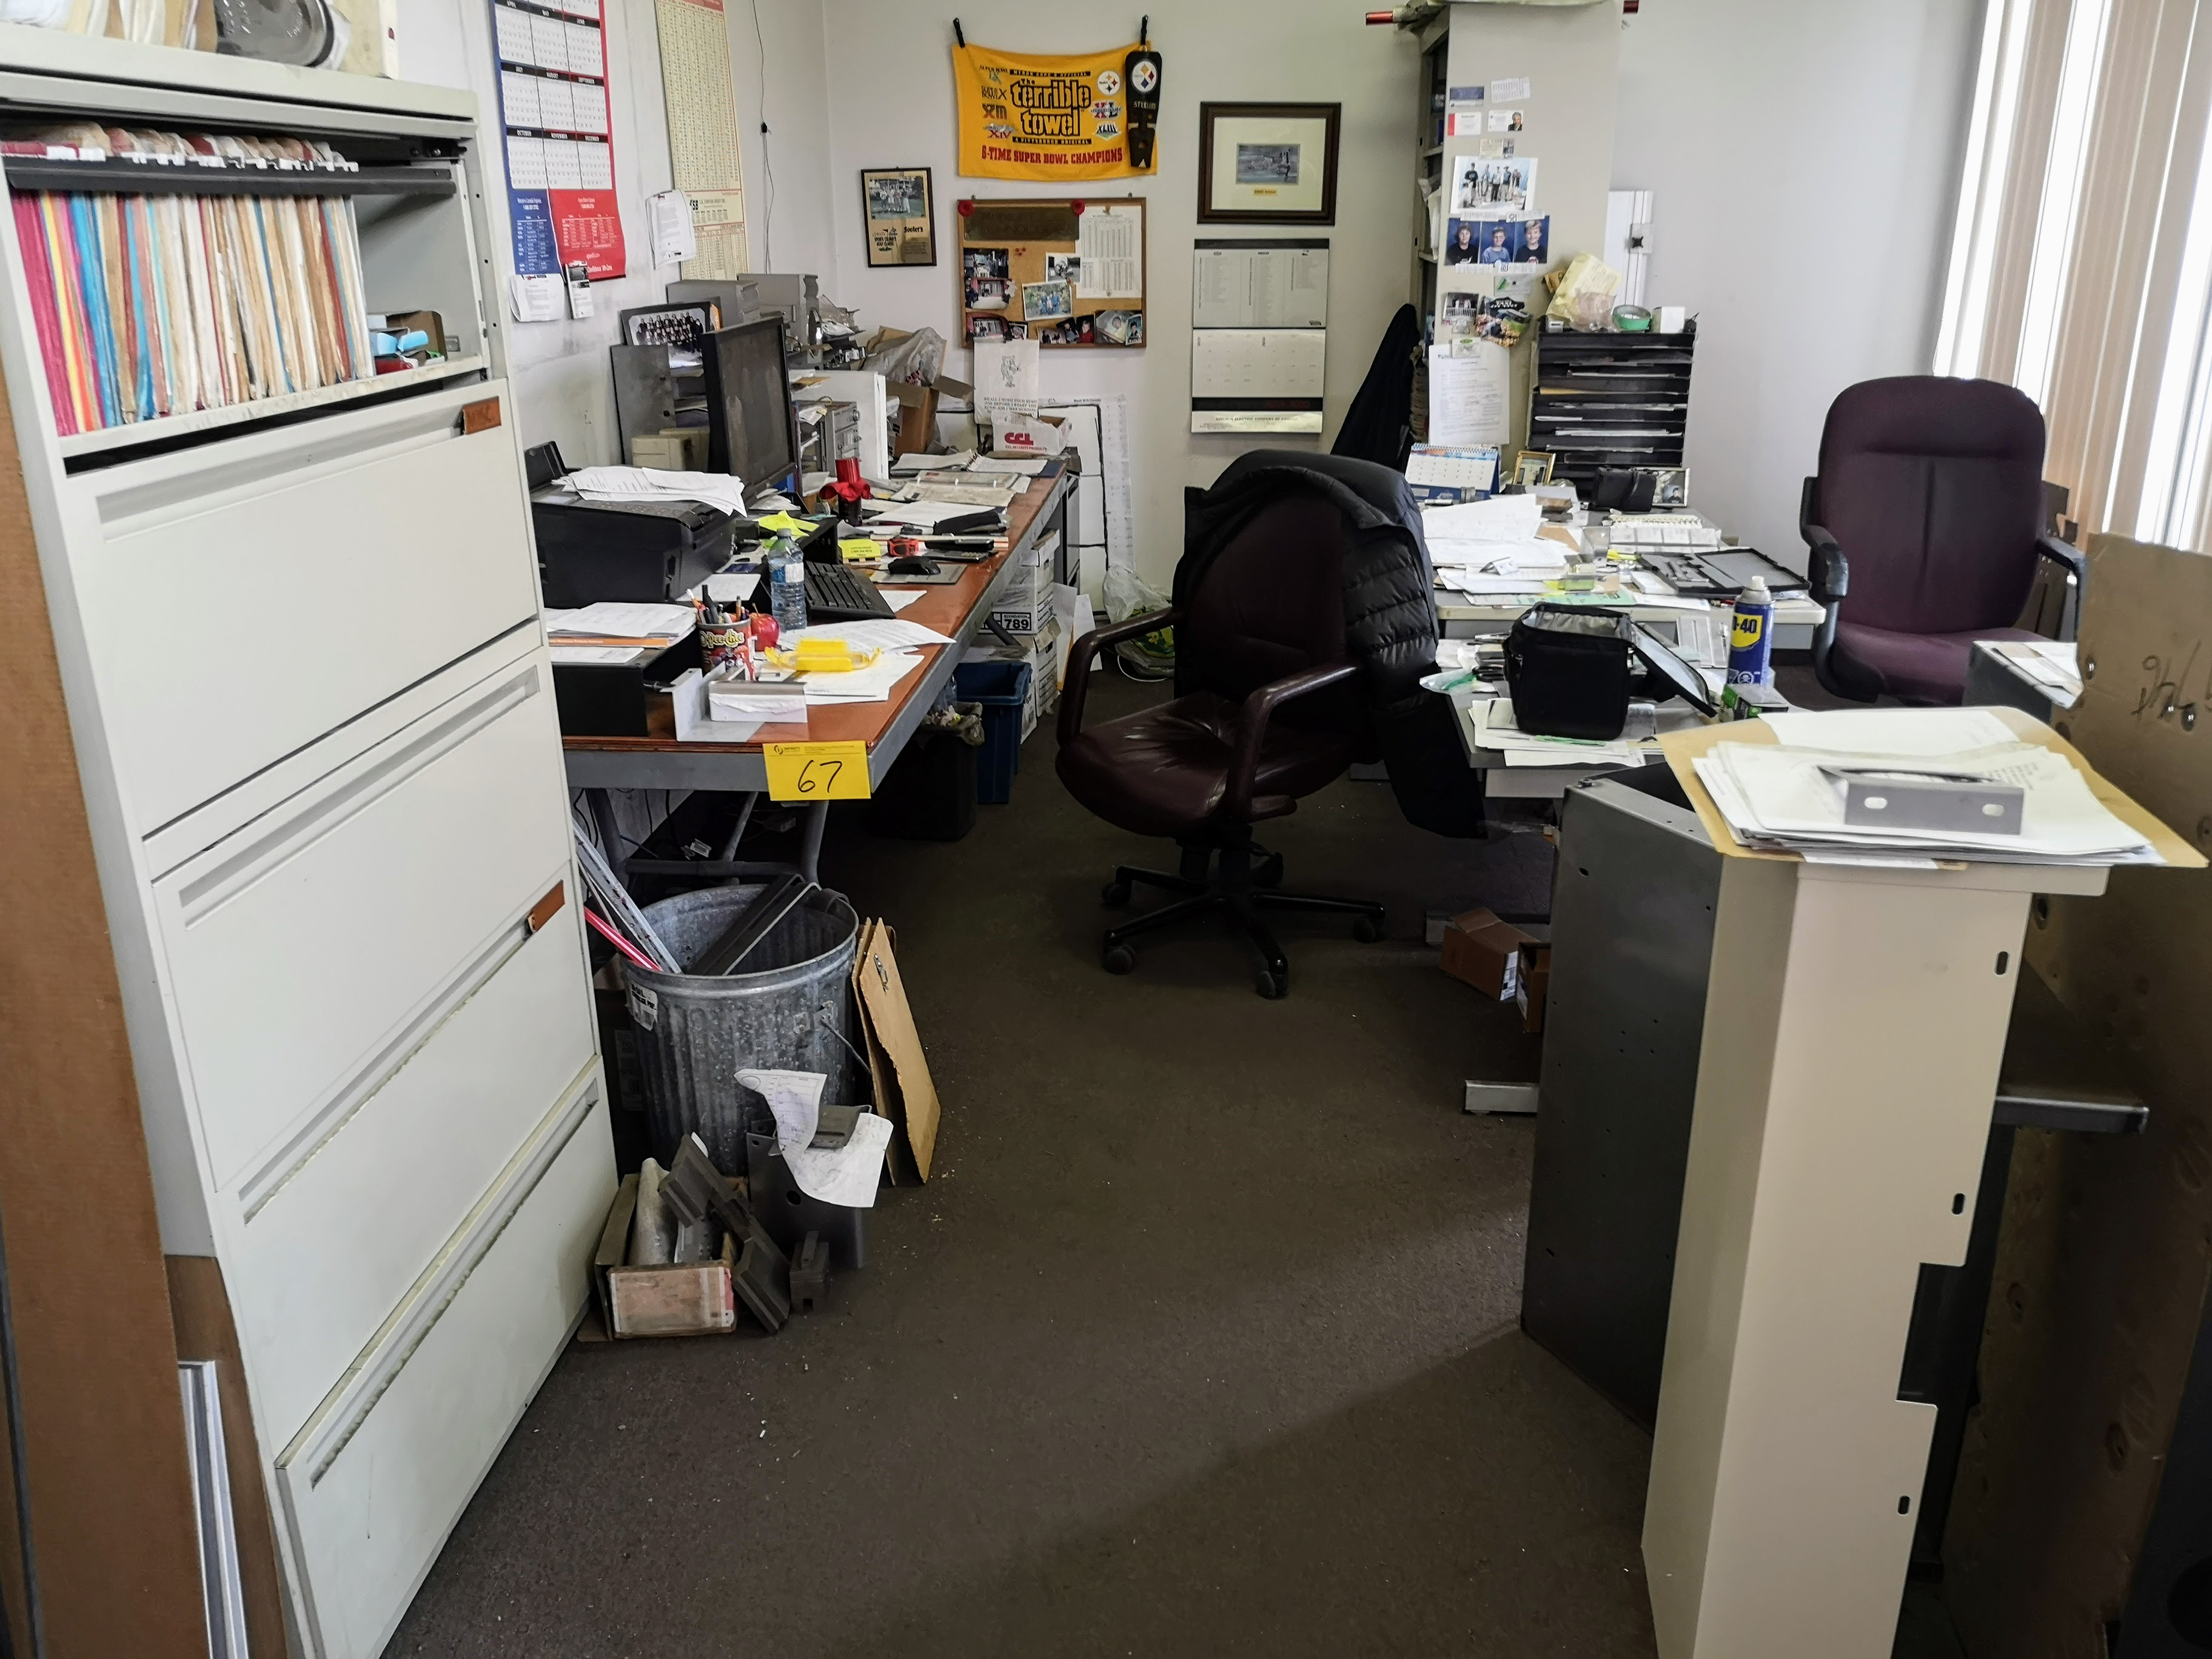 CONTENTS OF OUTTER OFFICE (NO PERSONAL EFFECTS OR COMPUTER EQUIPMENT)